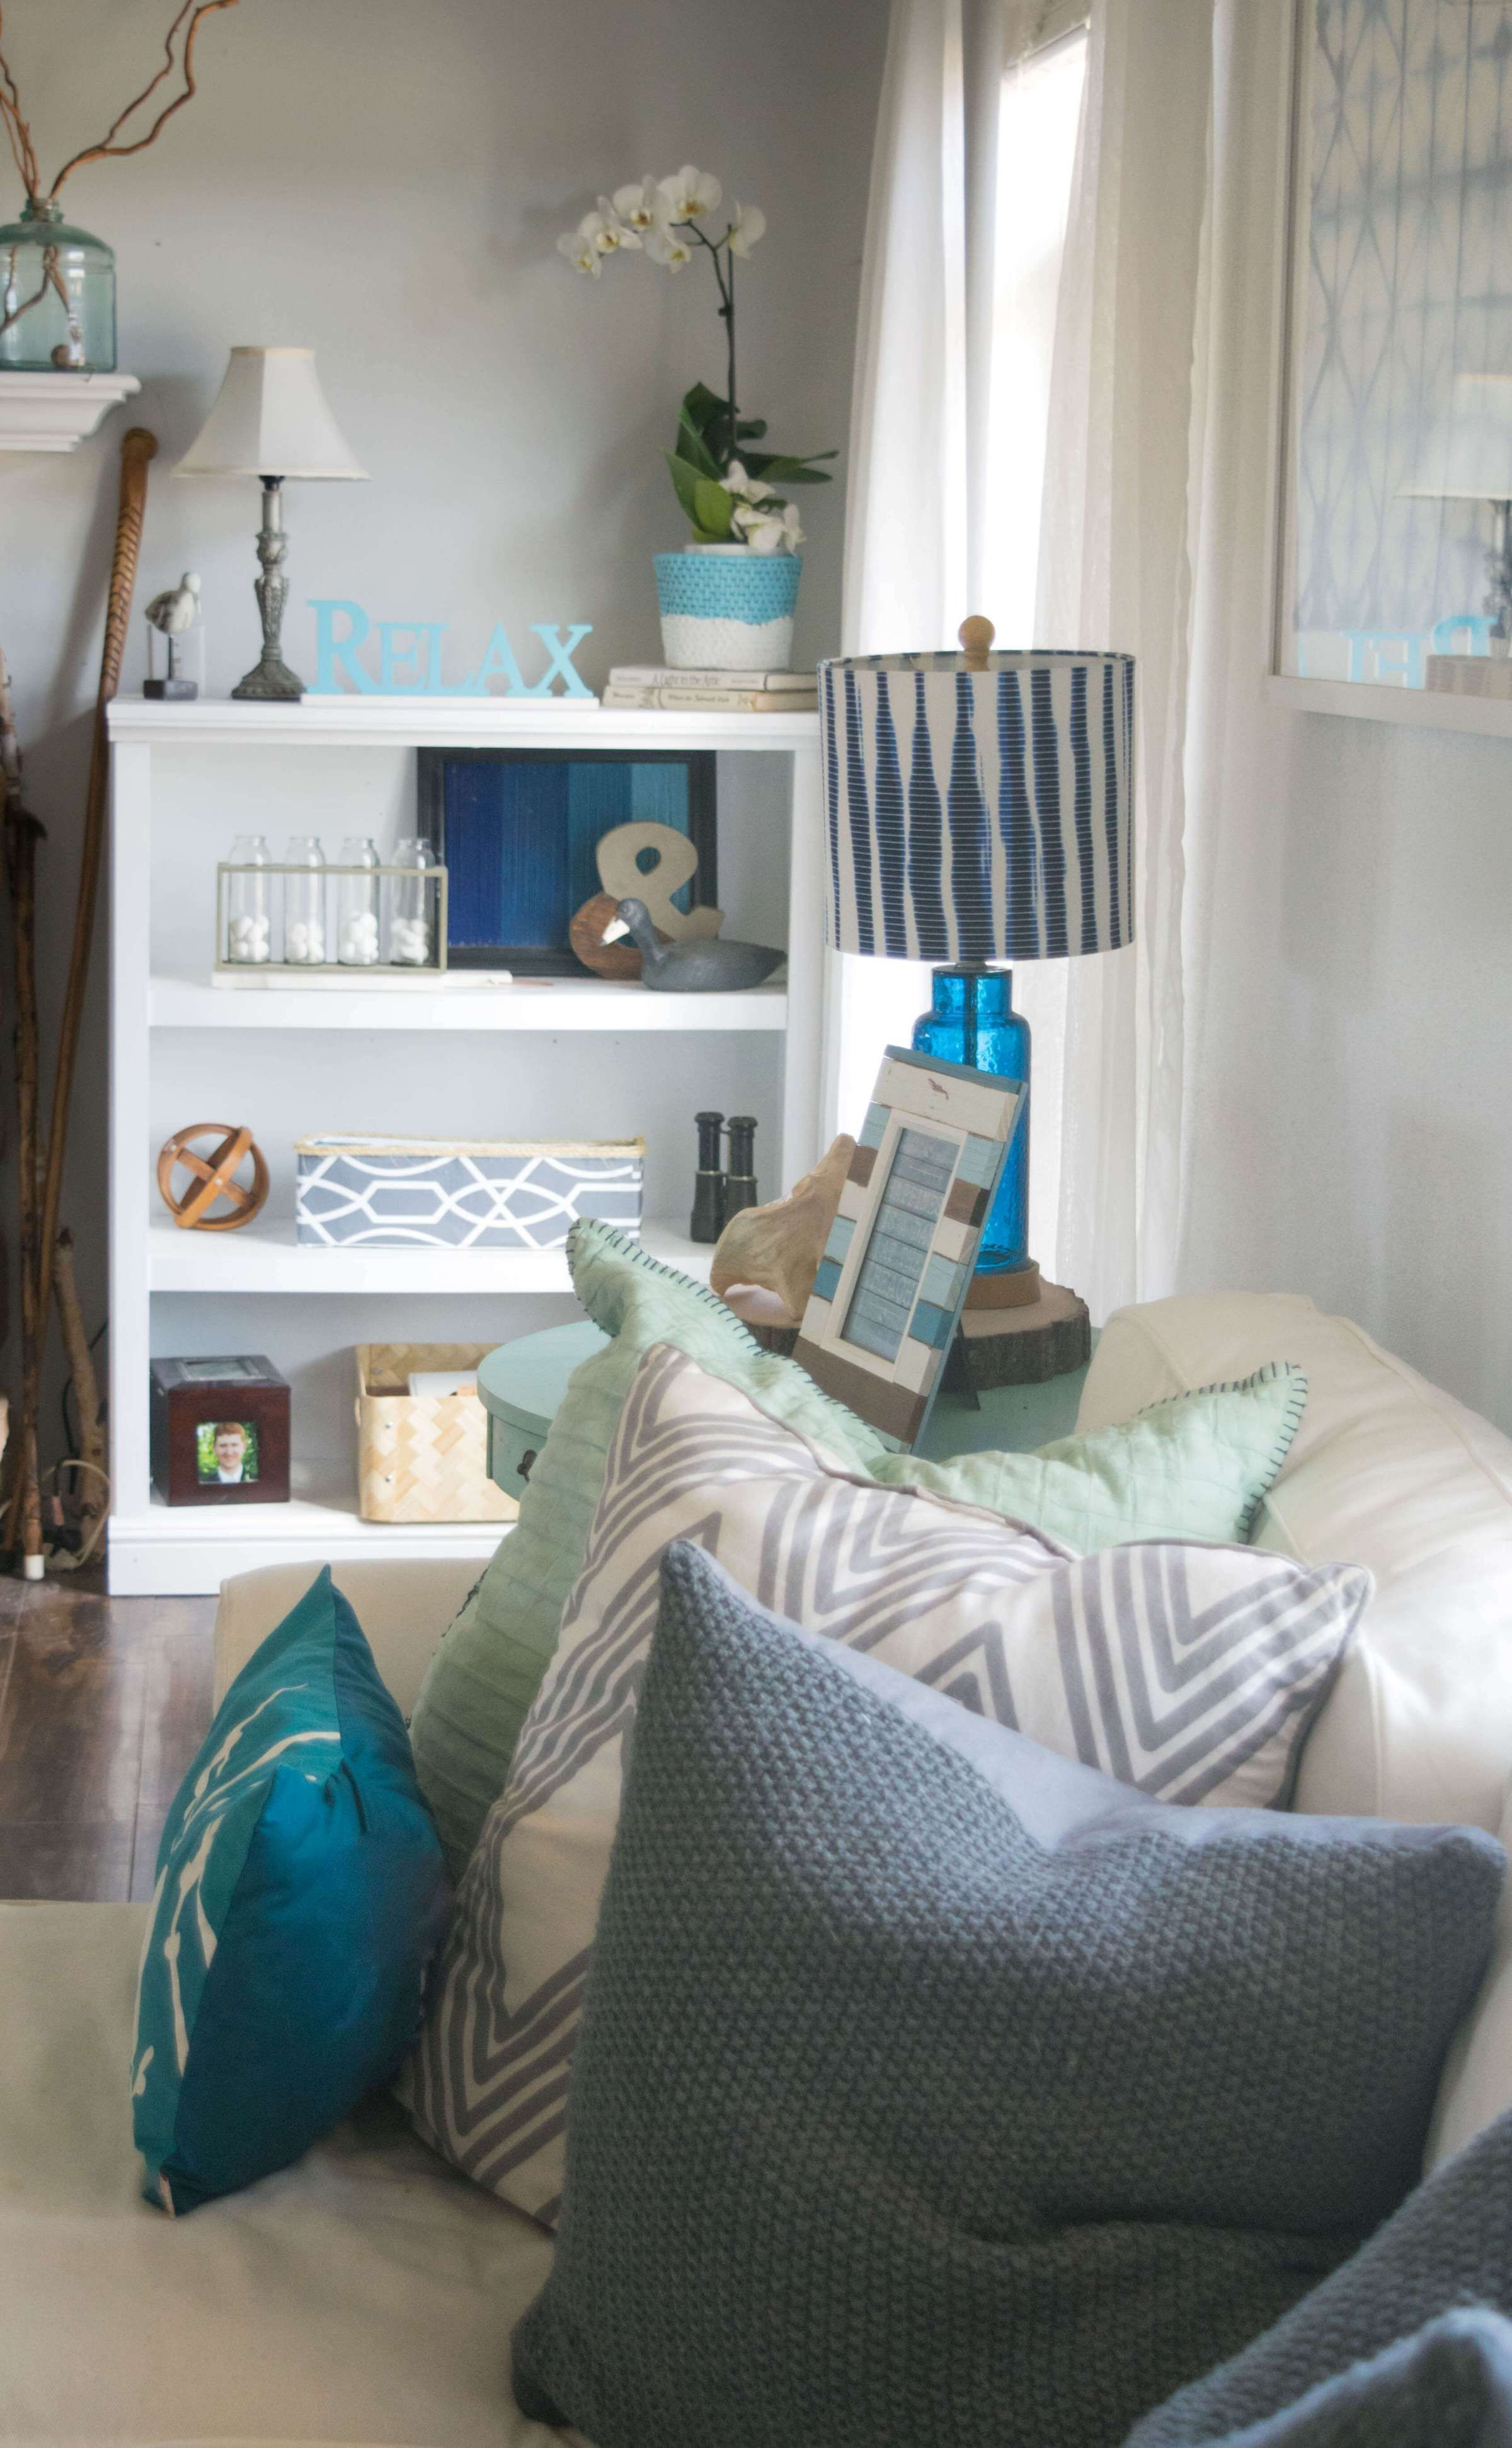 Spring Home Tour, 20 Popular Home Decor Bloggers Share